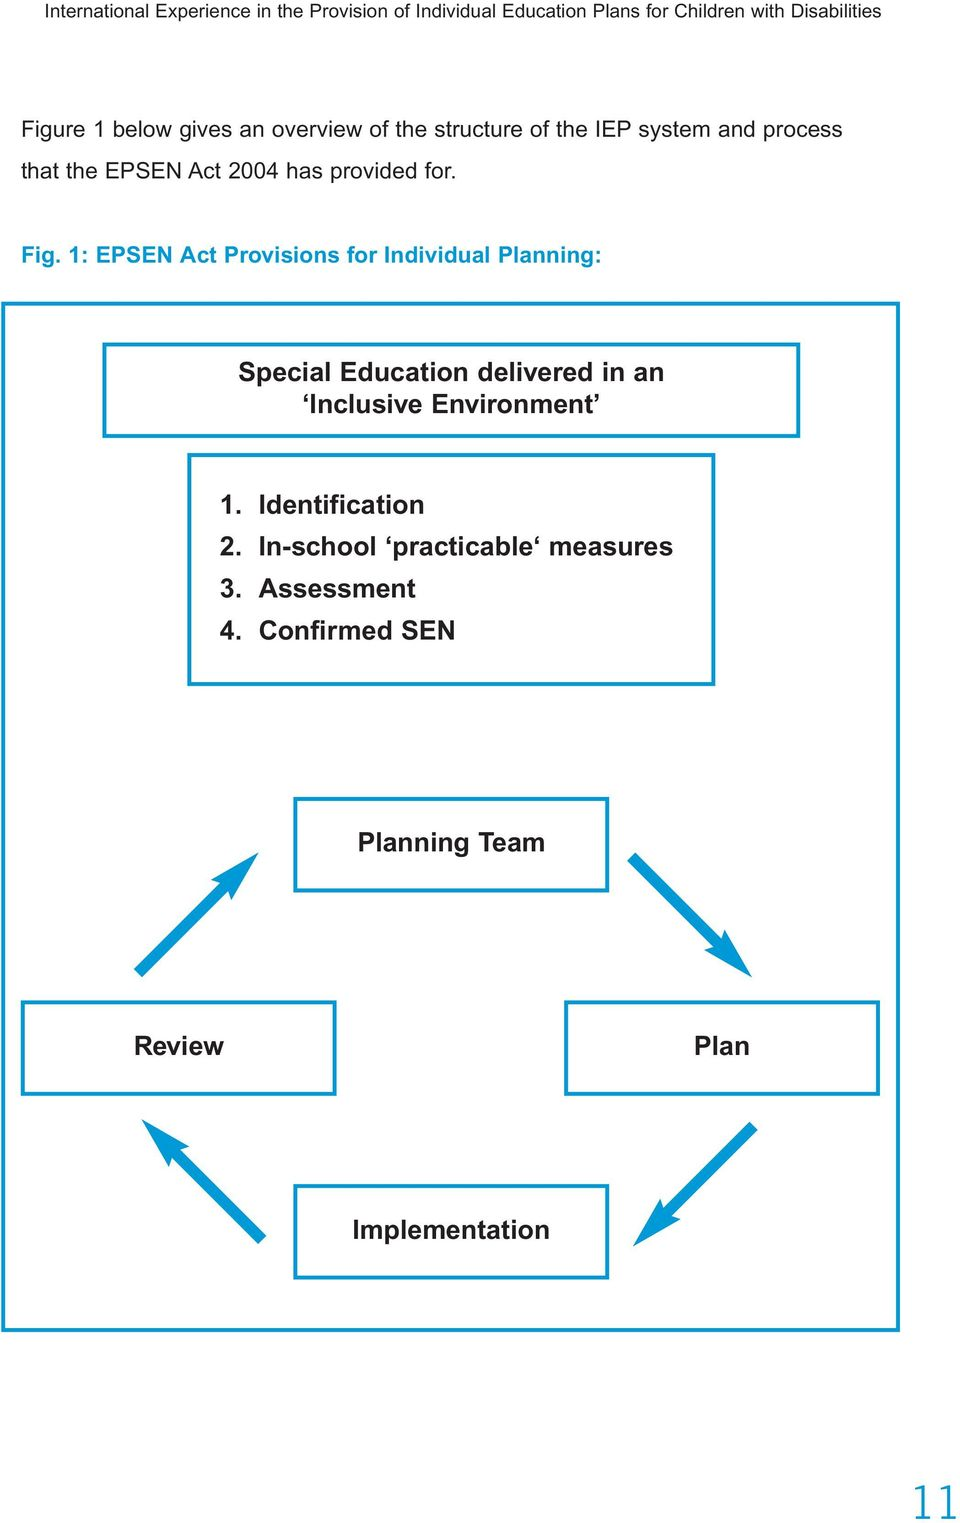 Fig. 1: EPSEN Act Provisions for Individual Planning: Special Education delivered in an Inclusive Environment 1.